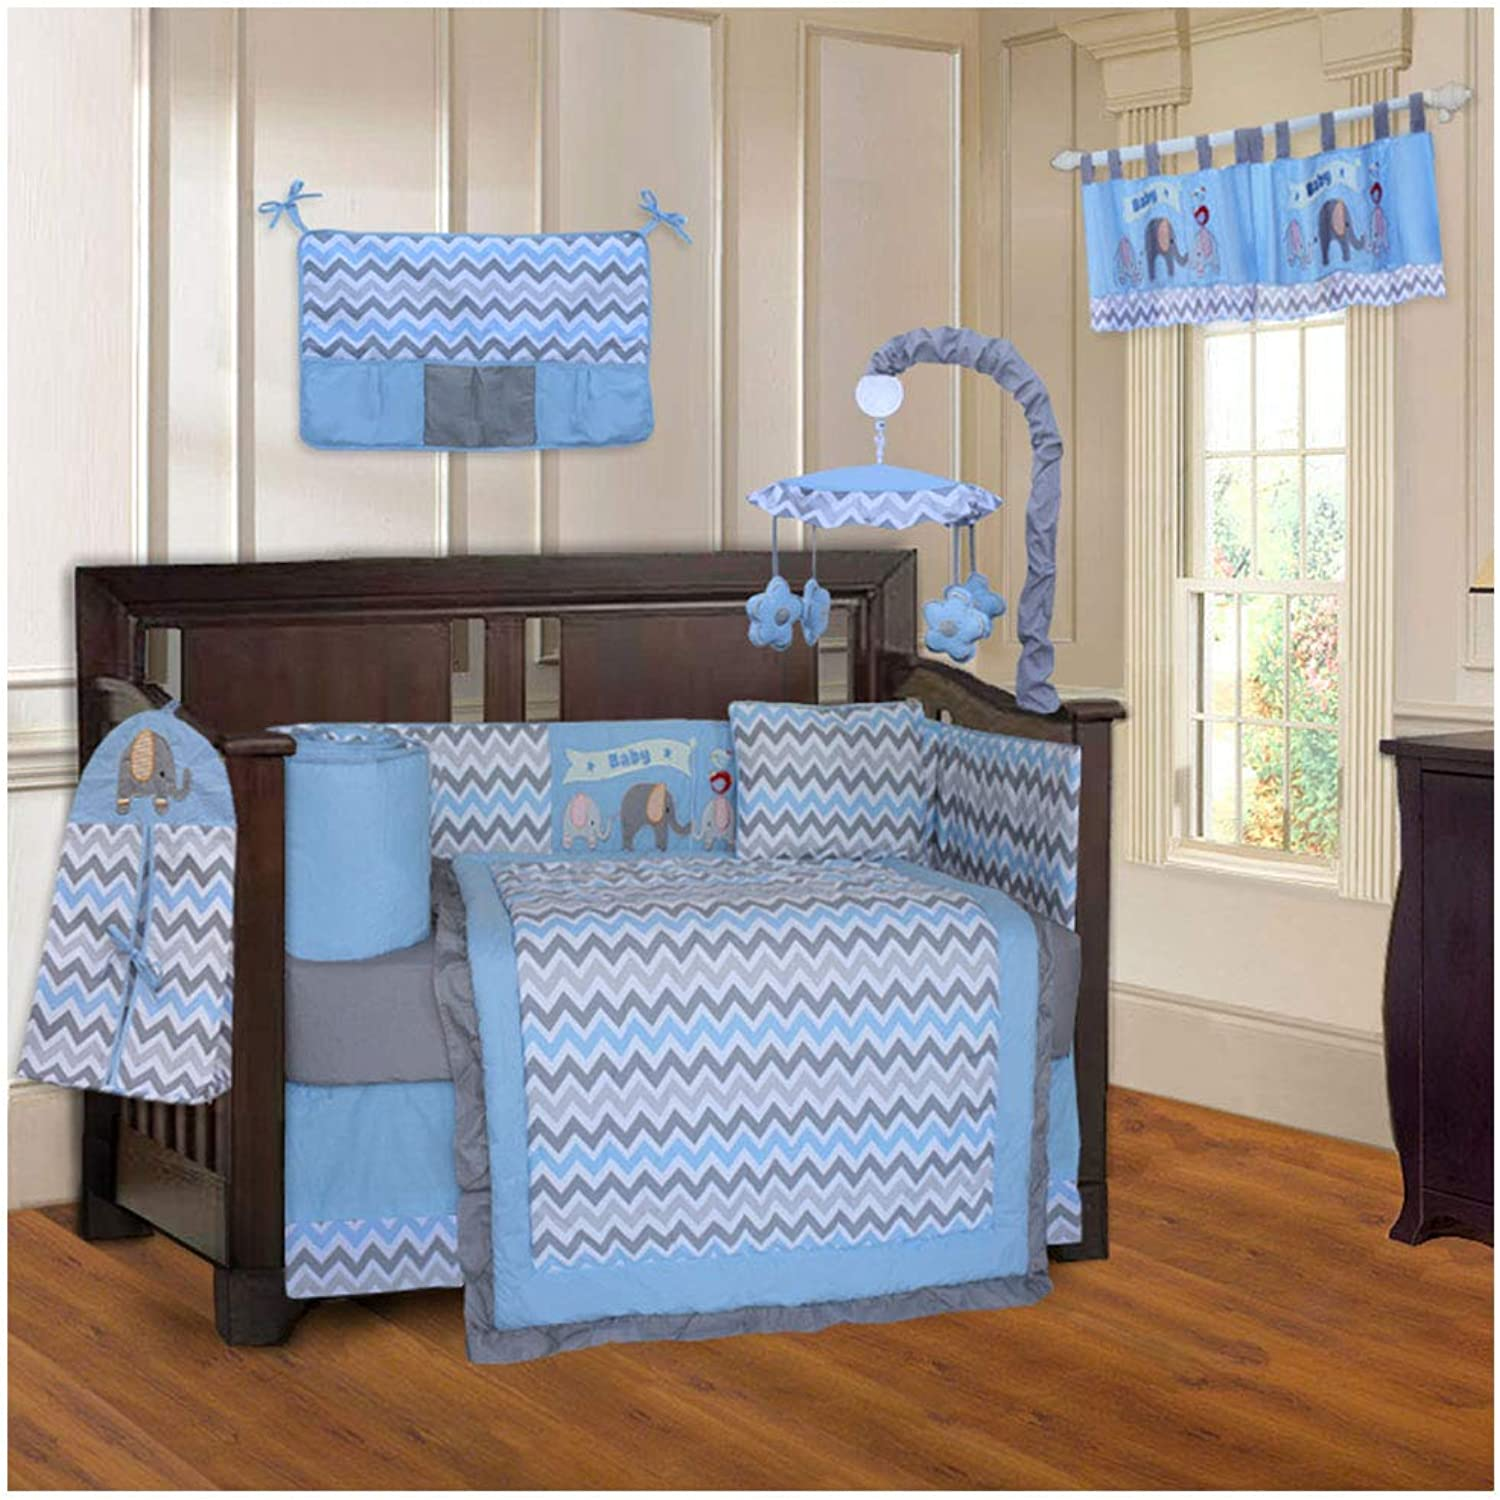 BabyFad Elephant Chevron bluee 10 Piece Baby Crib Bedding Set